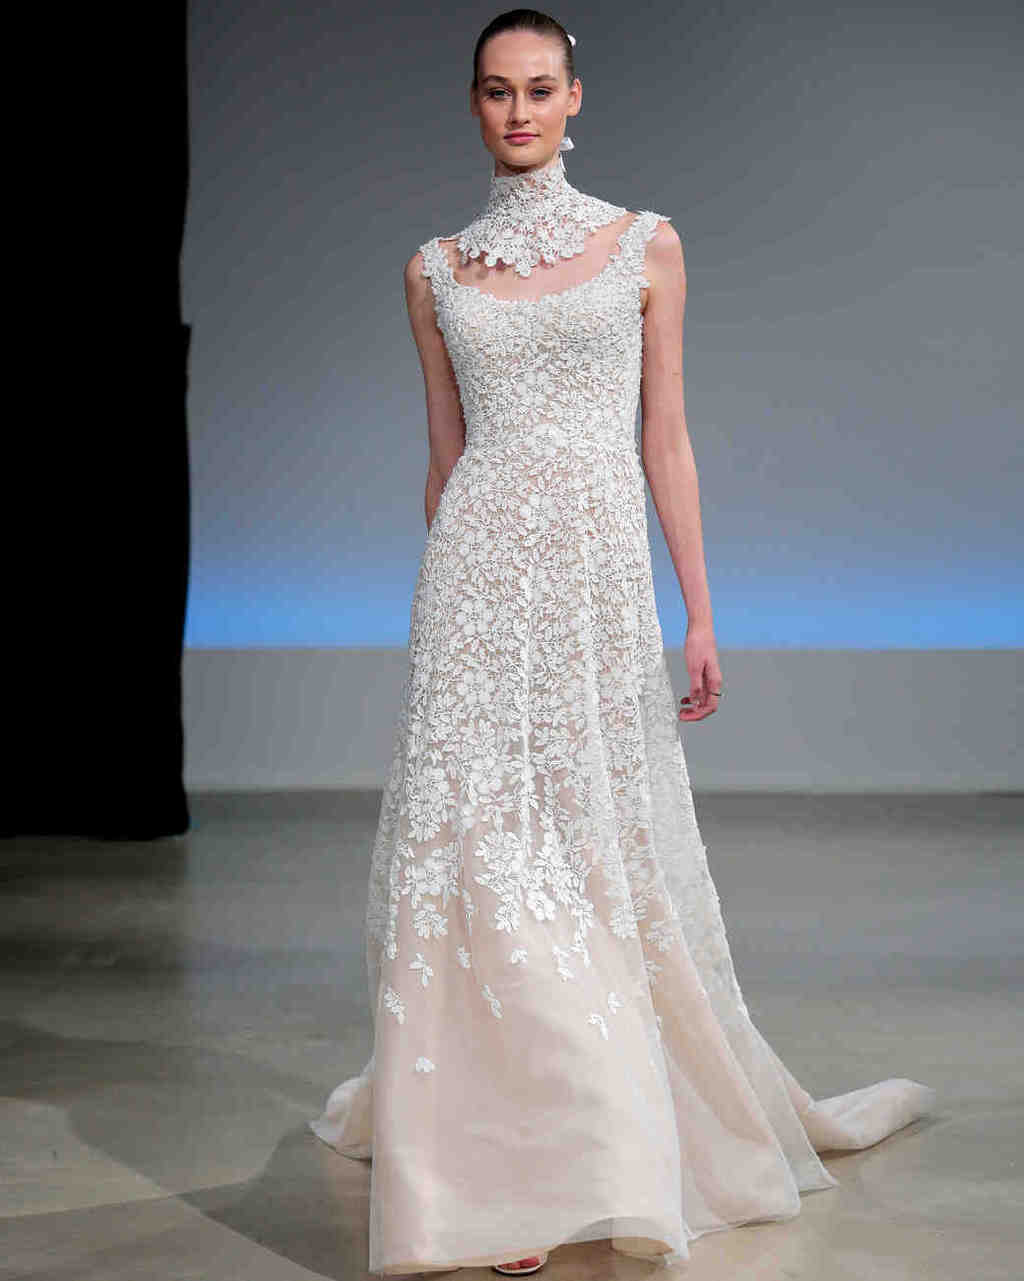 isabelle-armstrong-wedding-dress-fall2017-6203351-016_vert